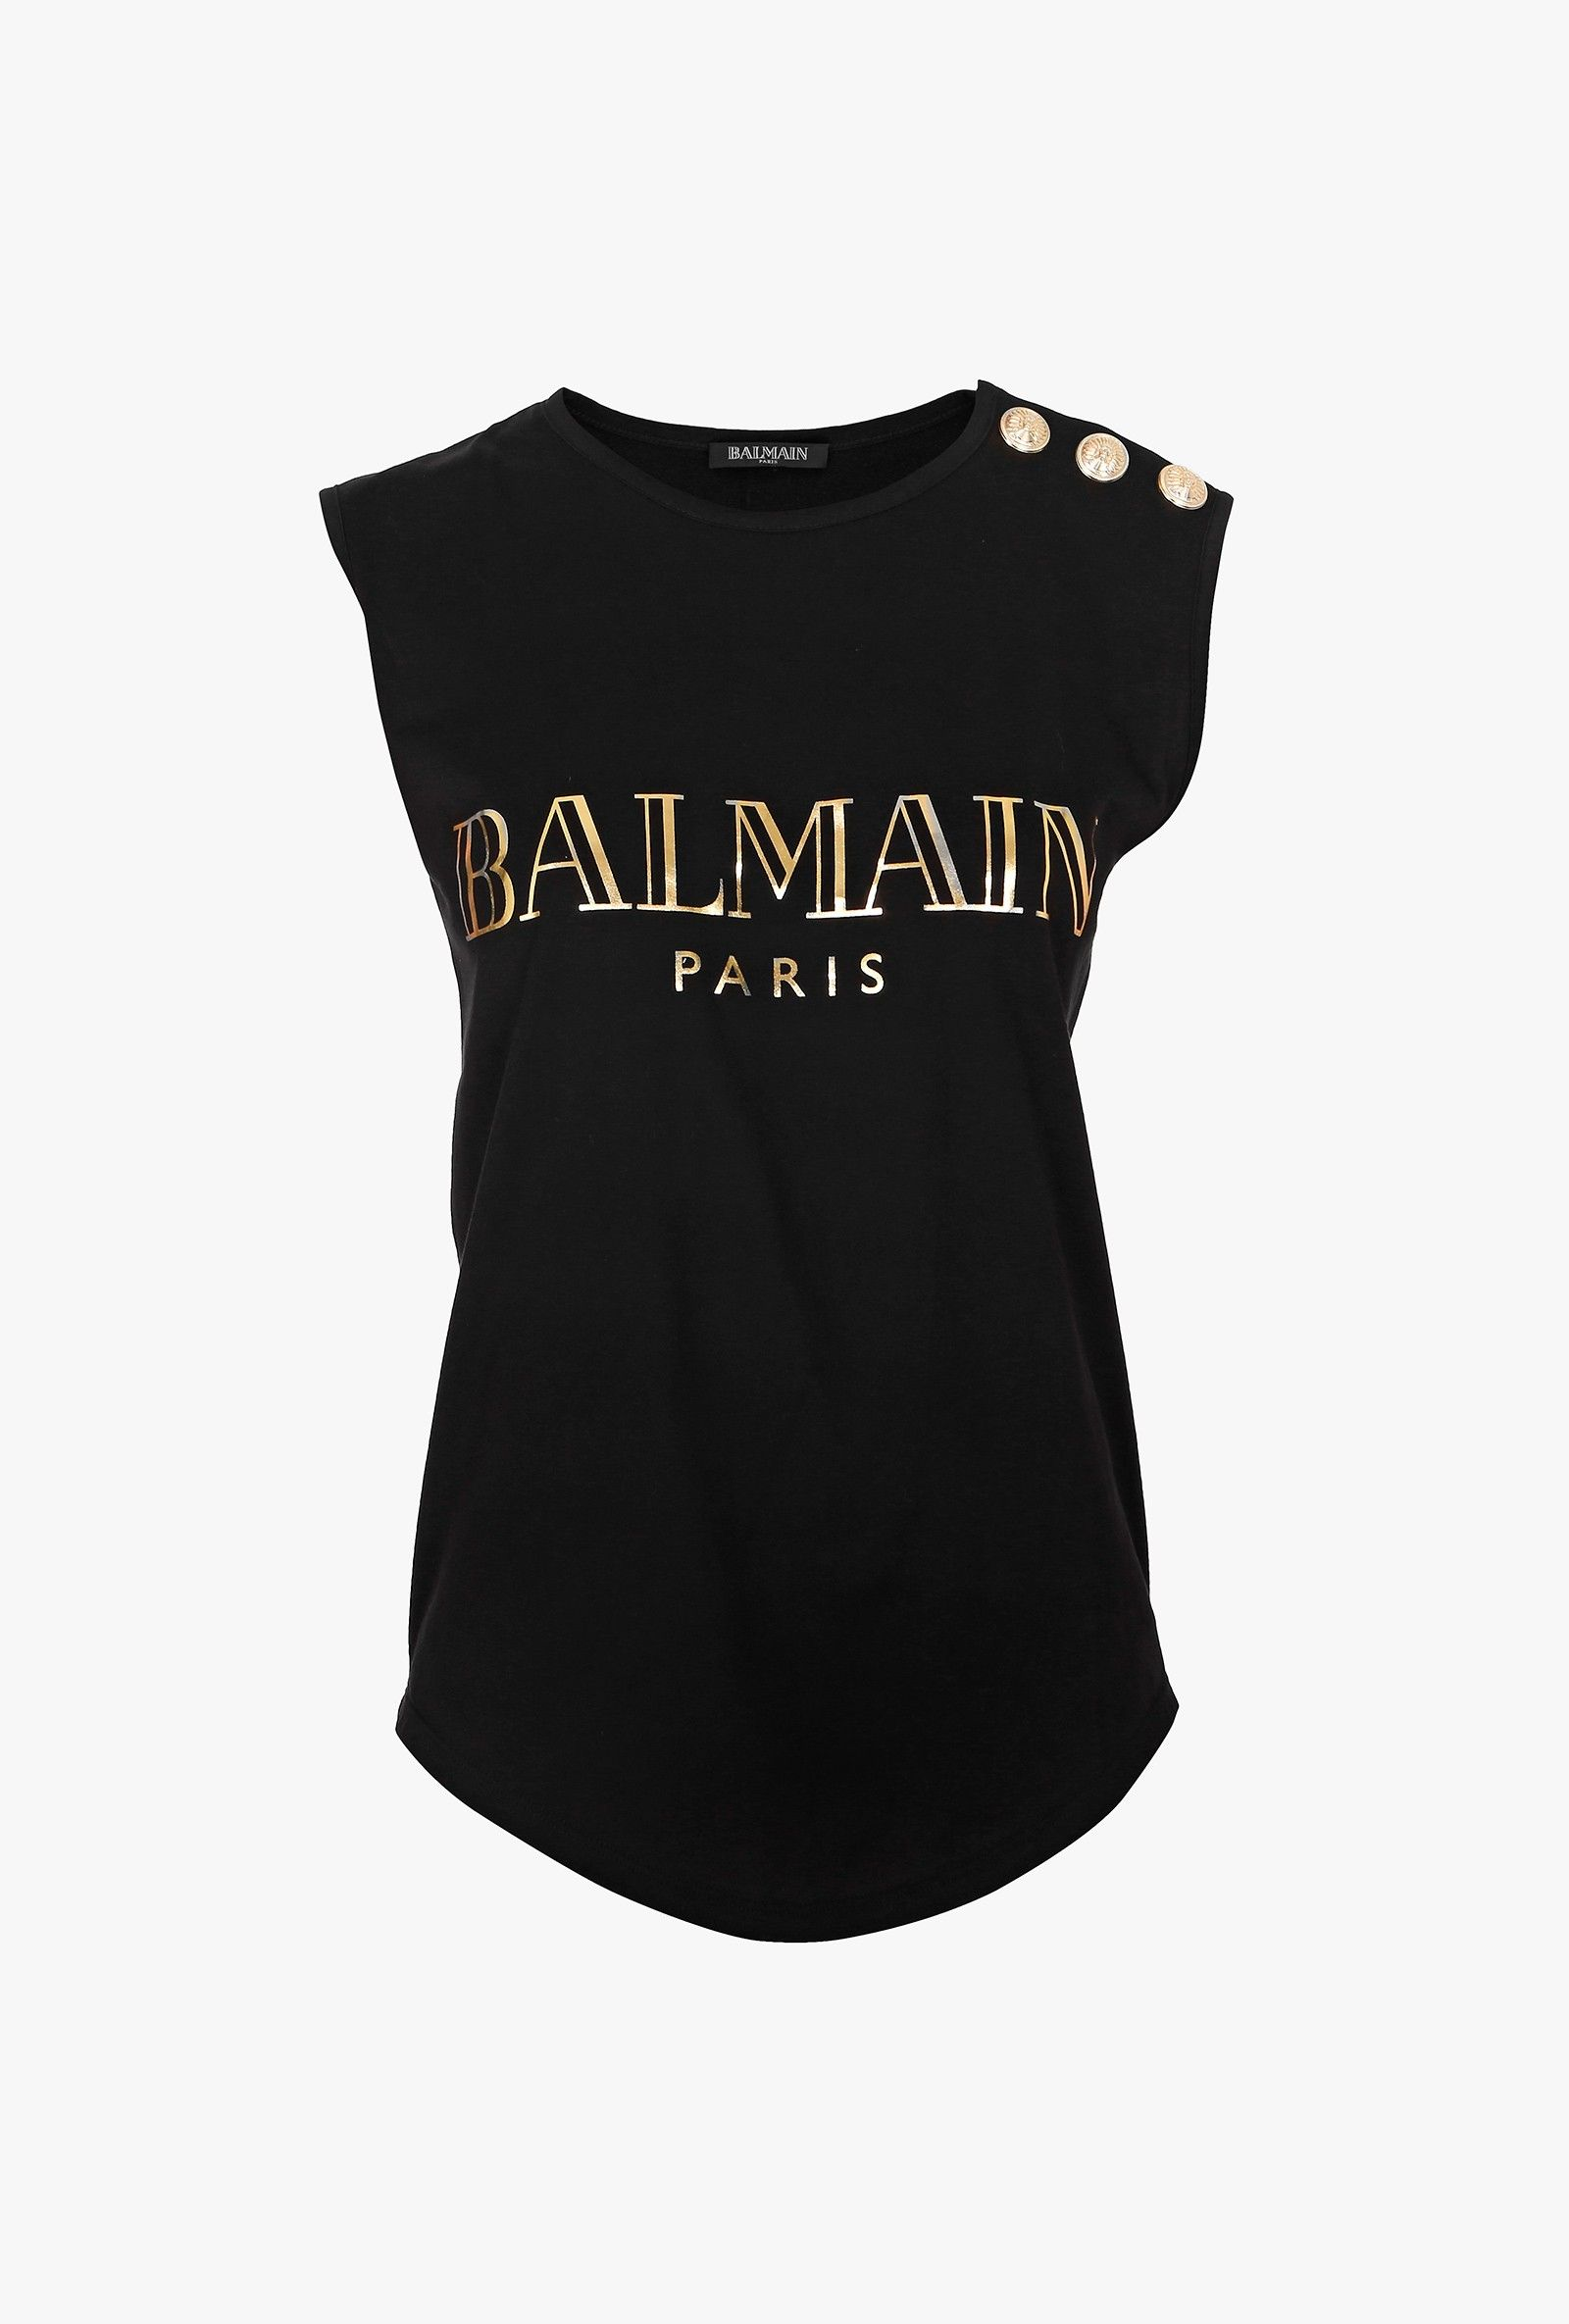 c31b02f492e Balmain - Sleeveless gold-tone silkscreen logo cotton T-shirt - Women s tops